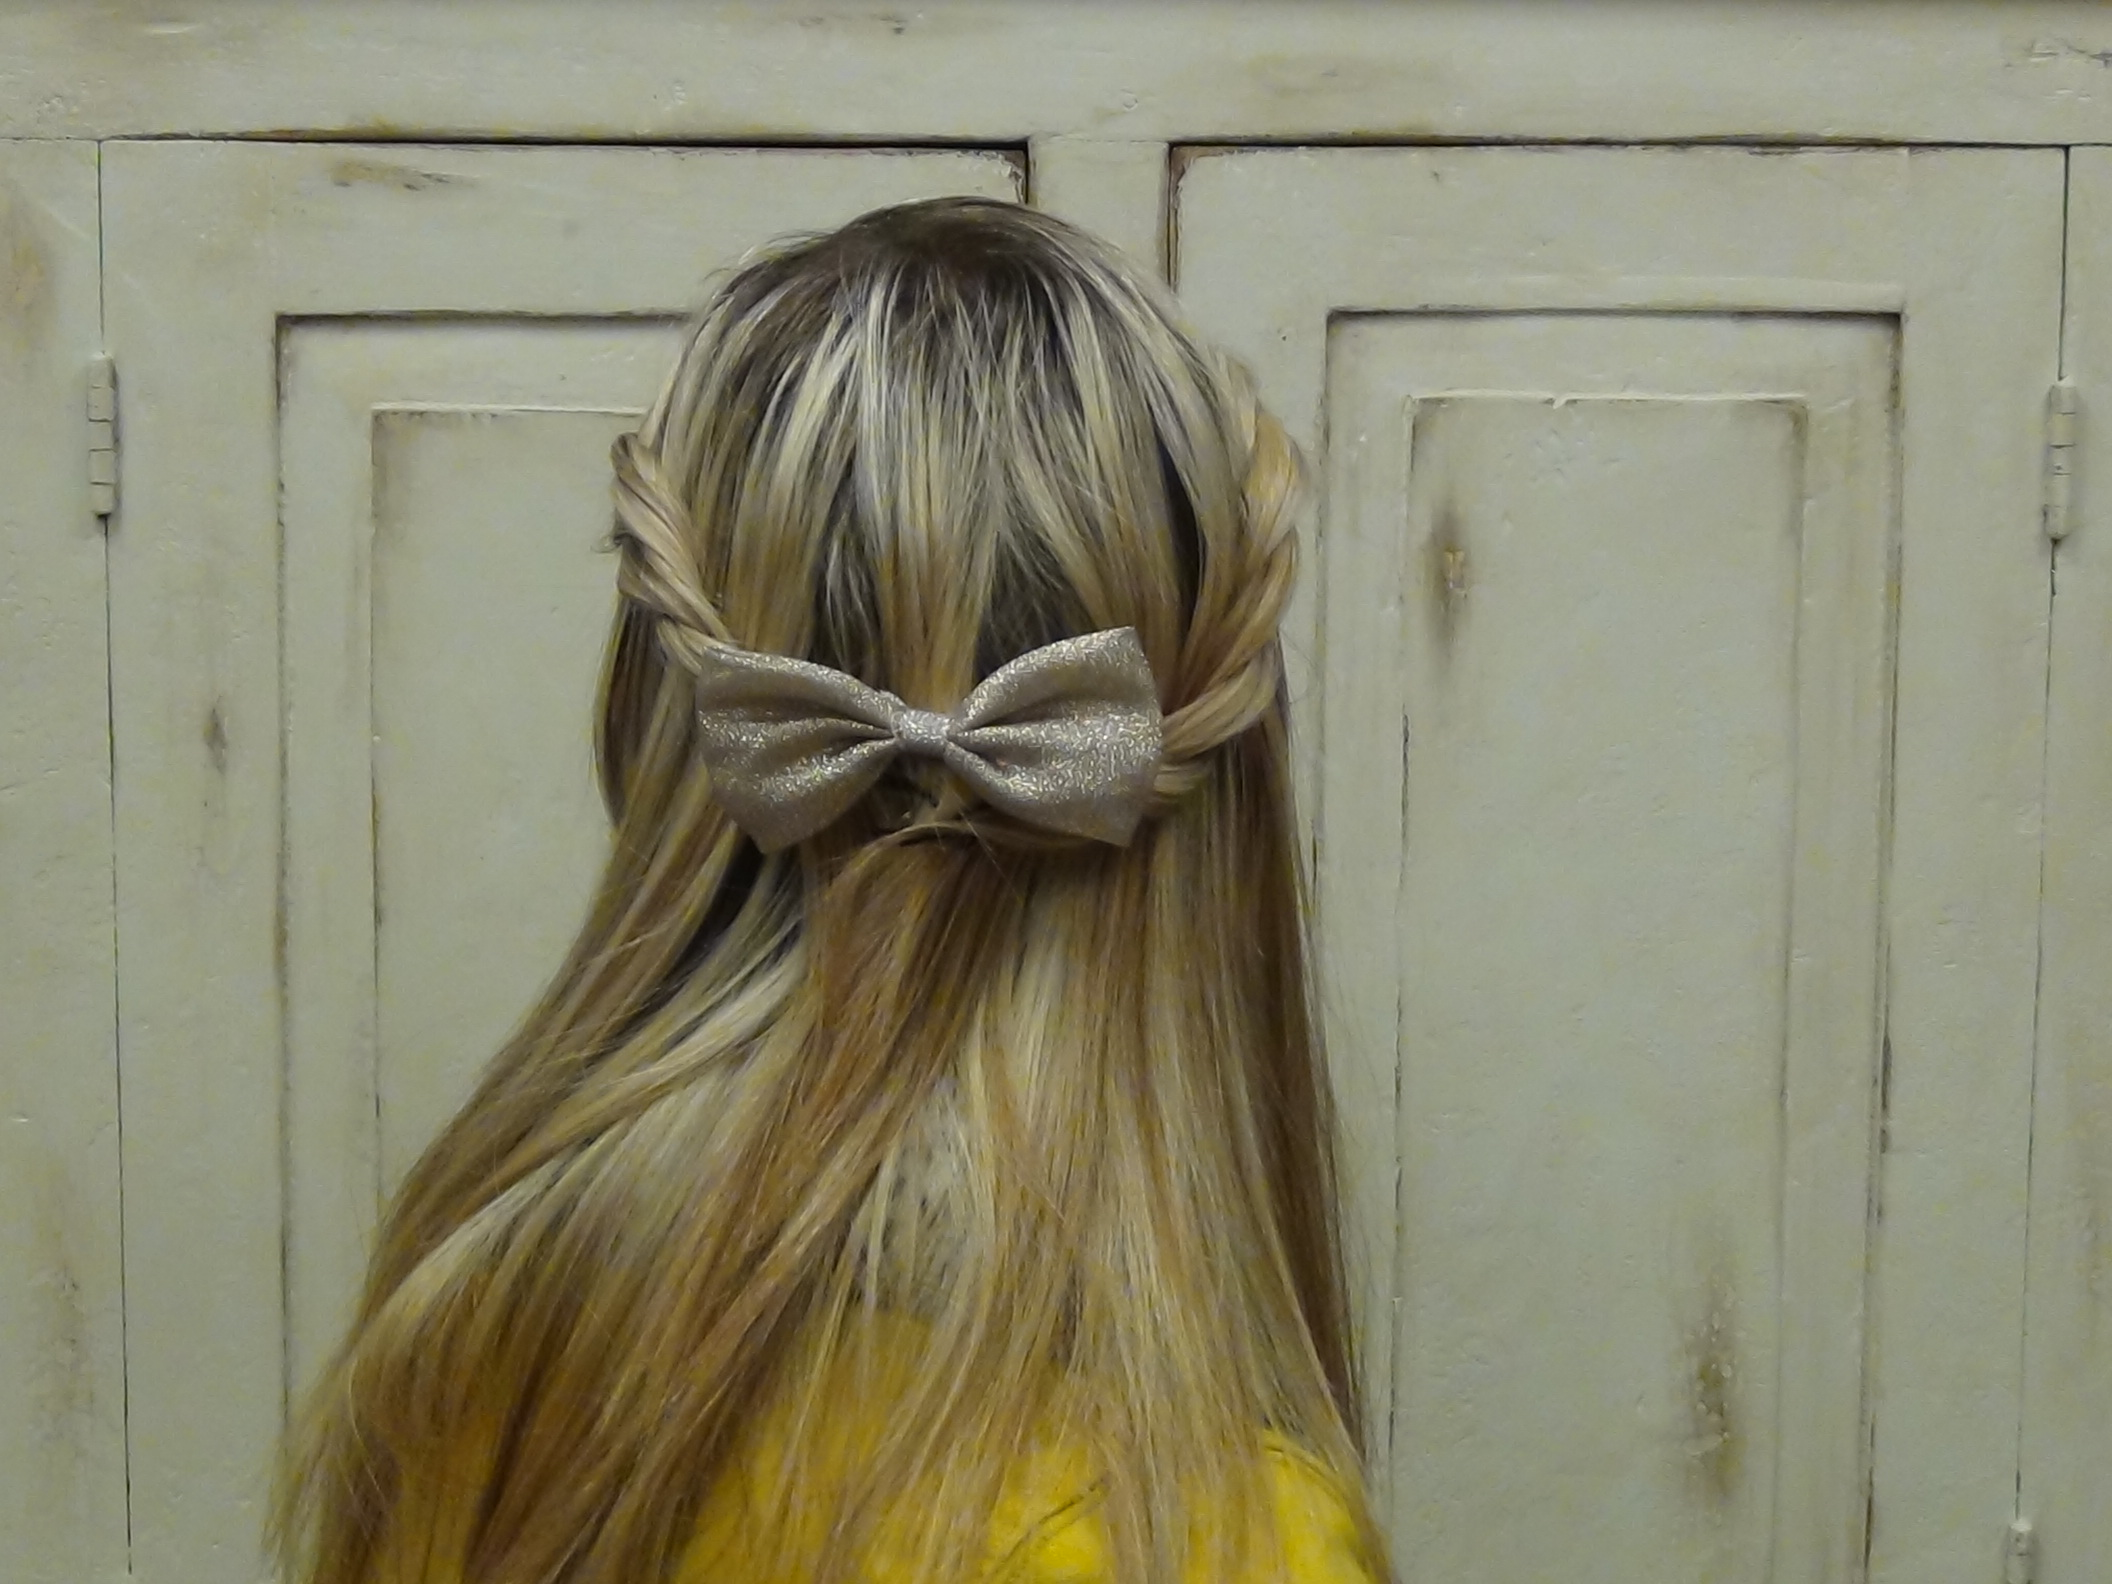 Pulled Back Hair Styles: French Twist Pull Back Hairstyle